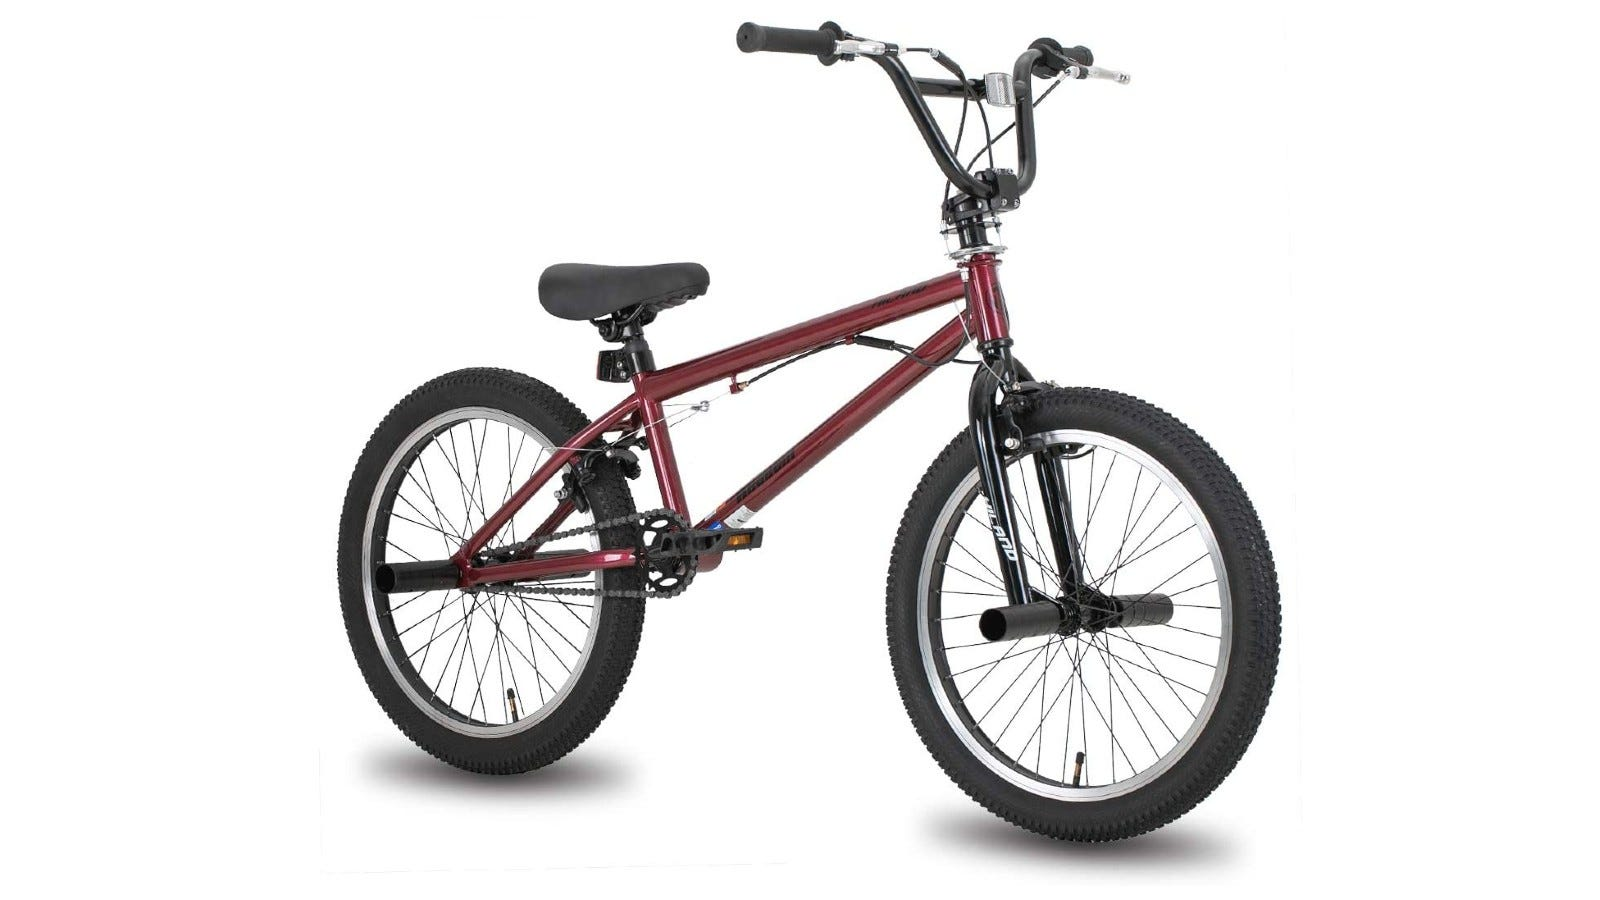 A BMX bike with double U-brakes for better safety